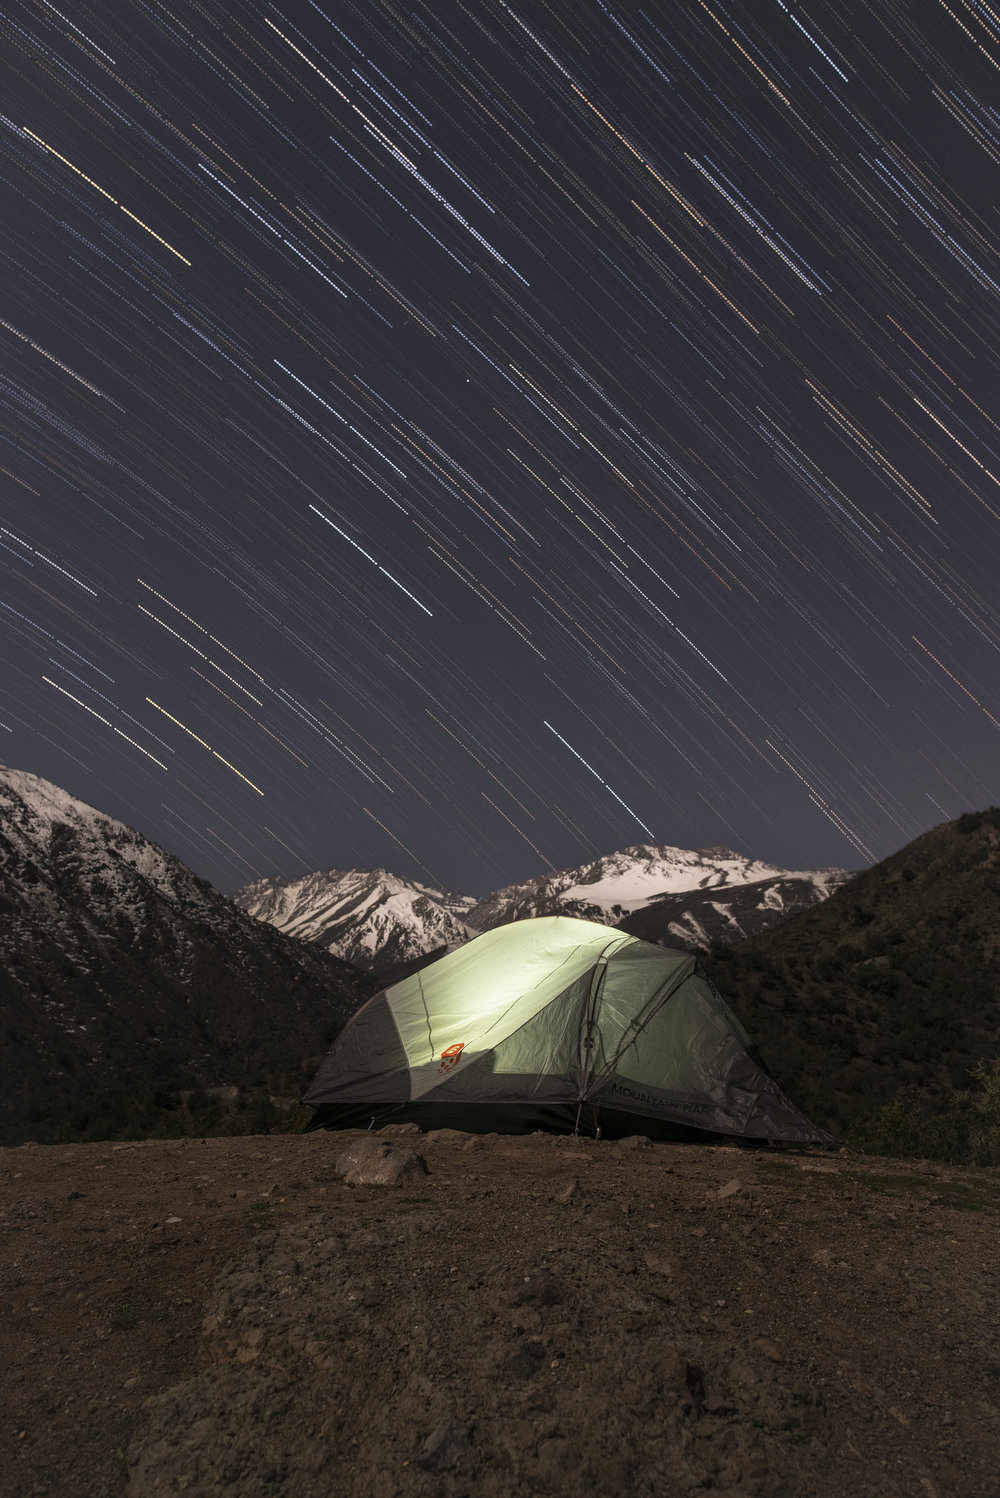 Star_Trail_mountain_hardware_renrob©-.JPG